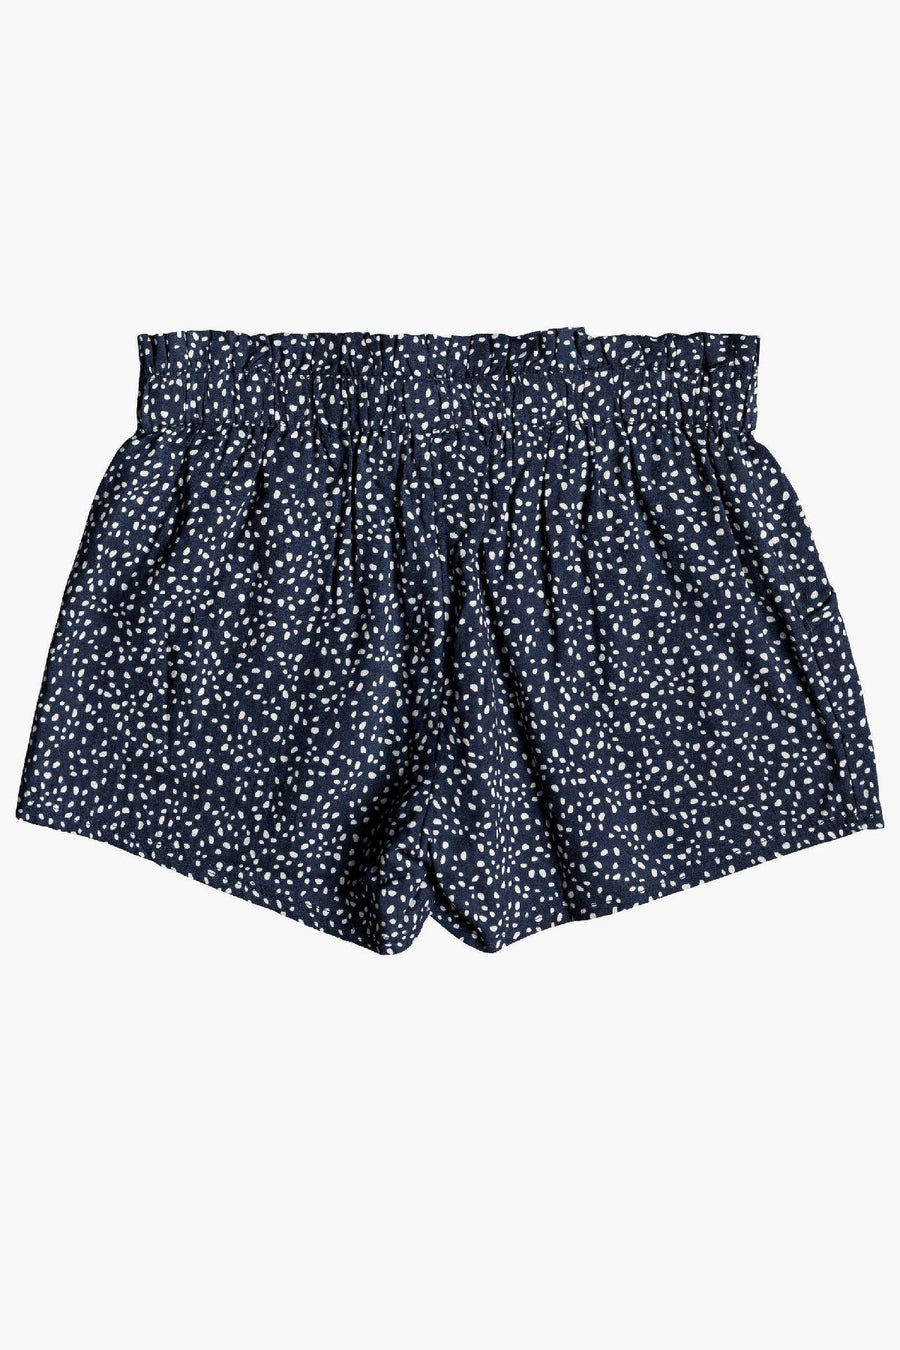 Roxy Rainbow Shower Shorts - Dress Blues